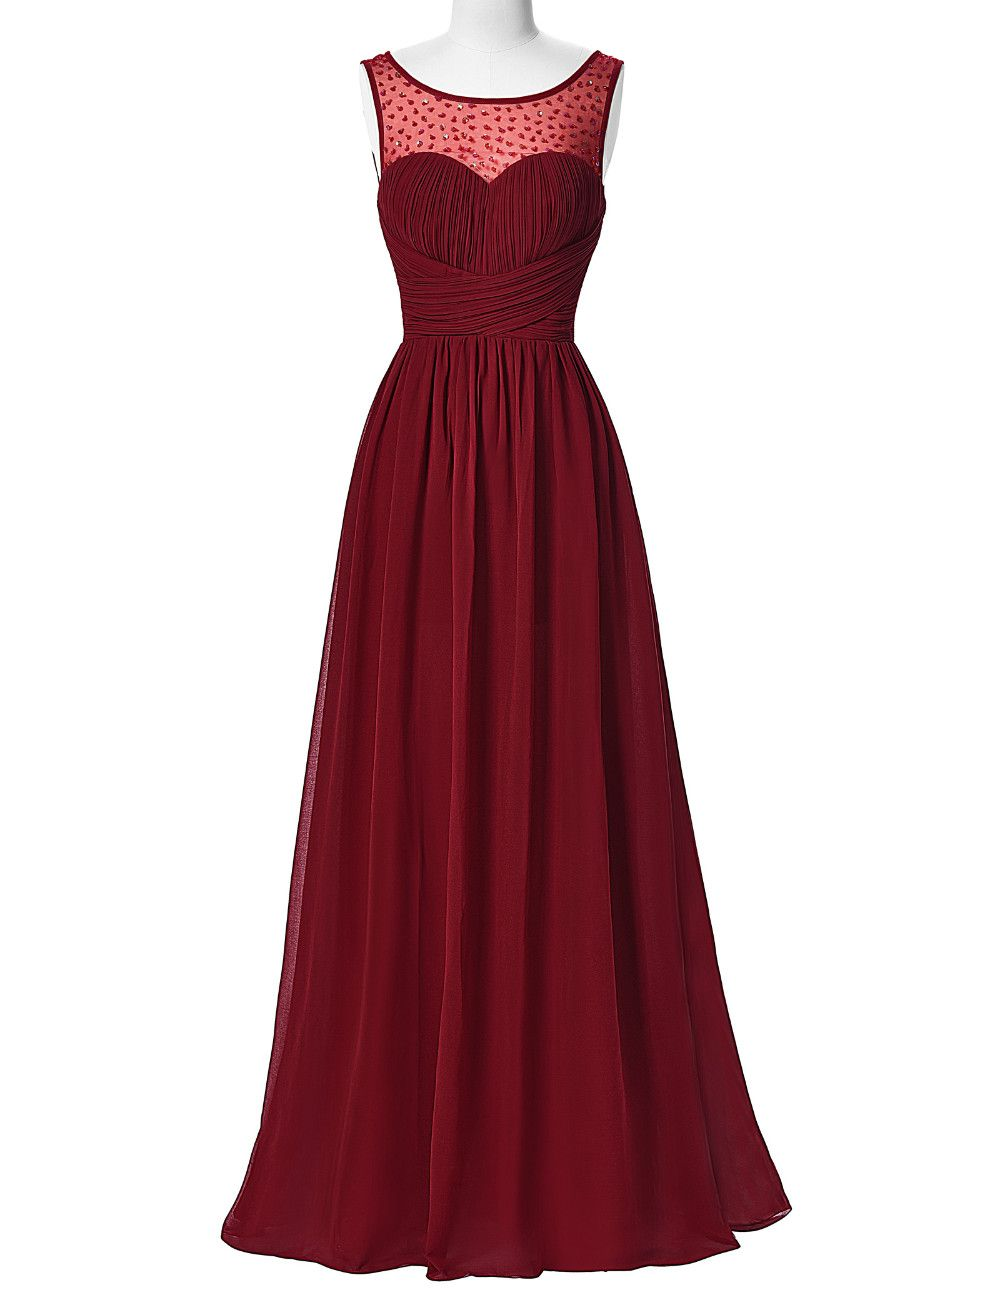 Long burgundy evening dress chiffon prom dressesreal picture prom